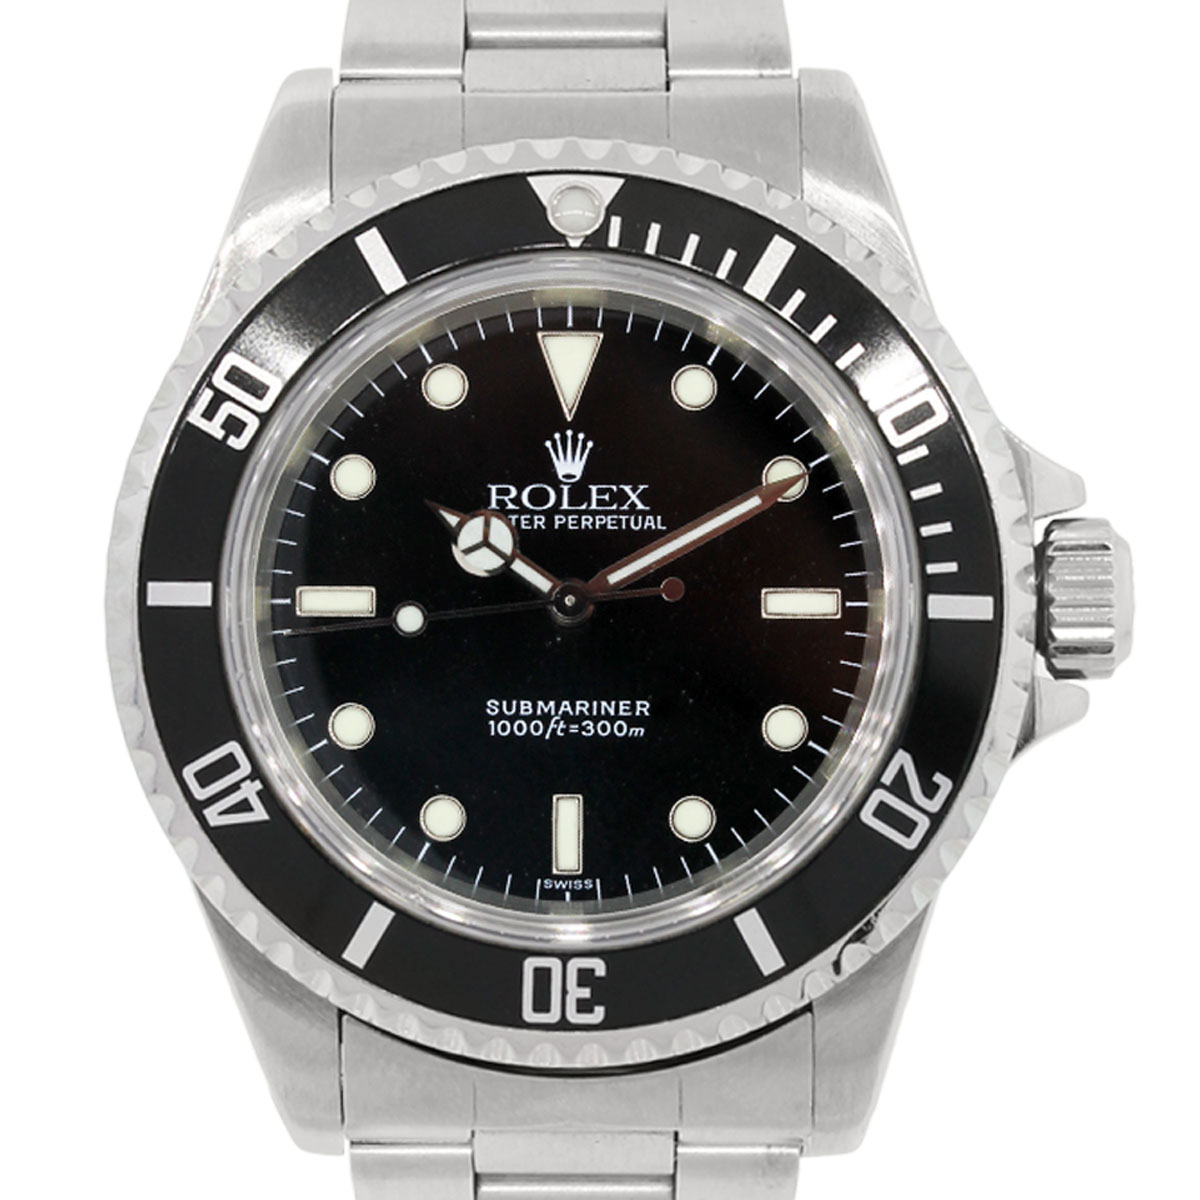 Rolex 14060 Submariner Non-Date Steel Watch